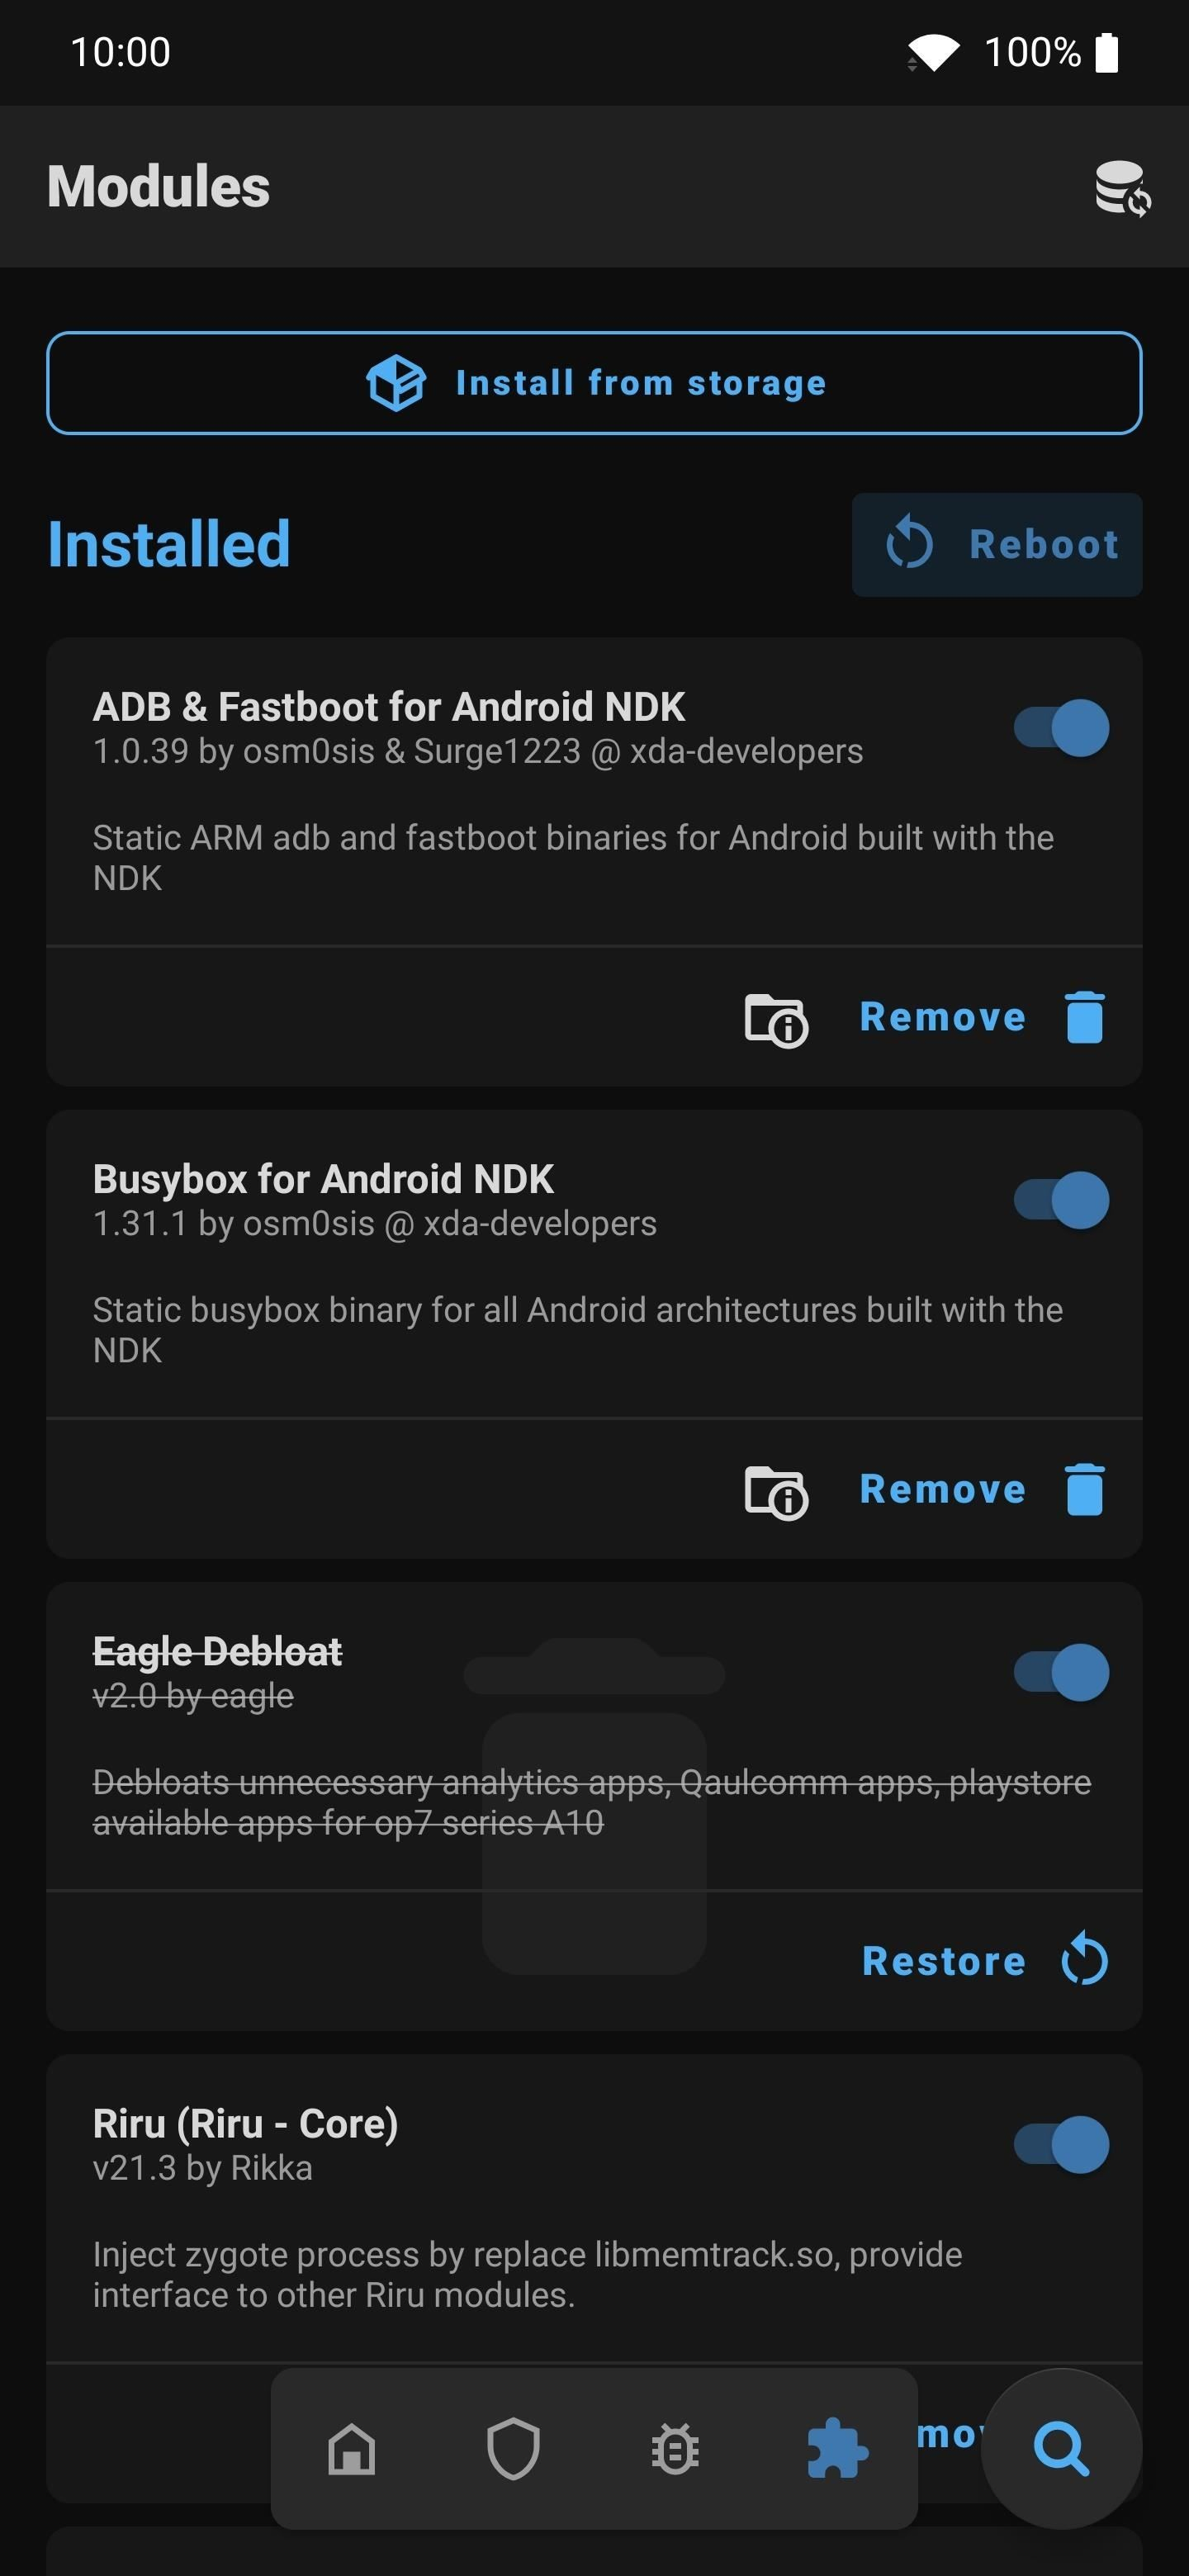 How to Remove Background Telemetry Services on Your OnePlus to Stop Unnecessary Data Collection